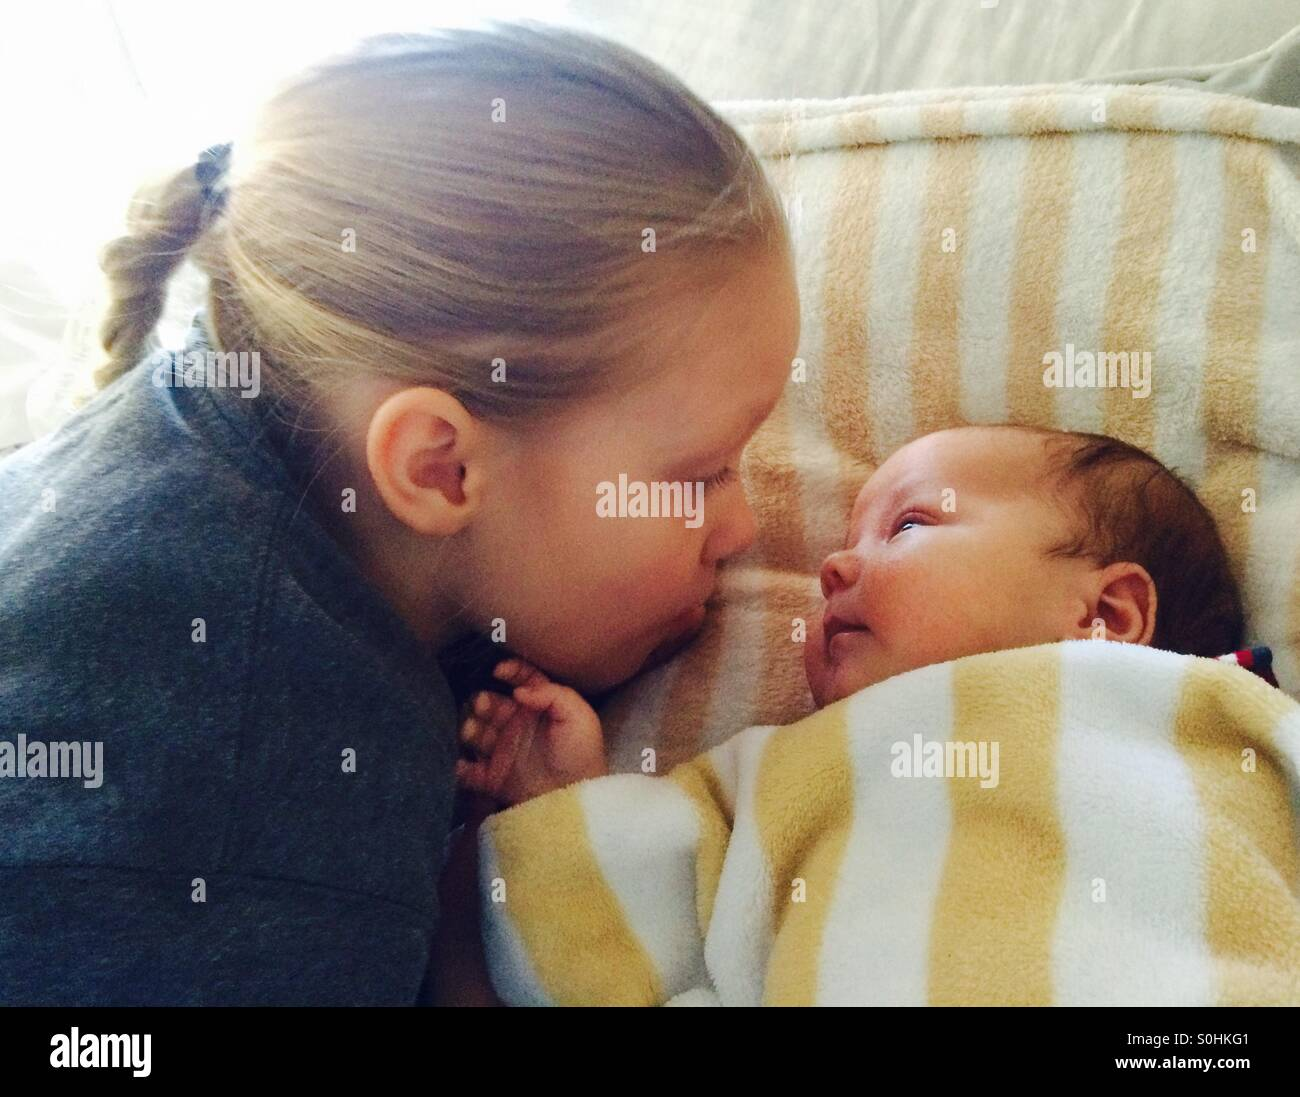 Girl Looking at her baby brother - Stock Image